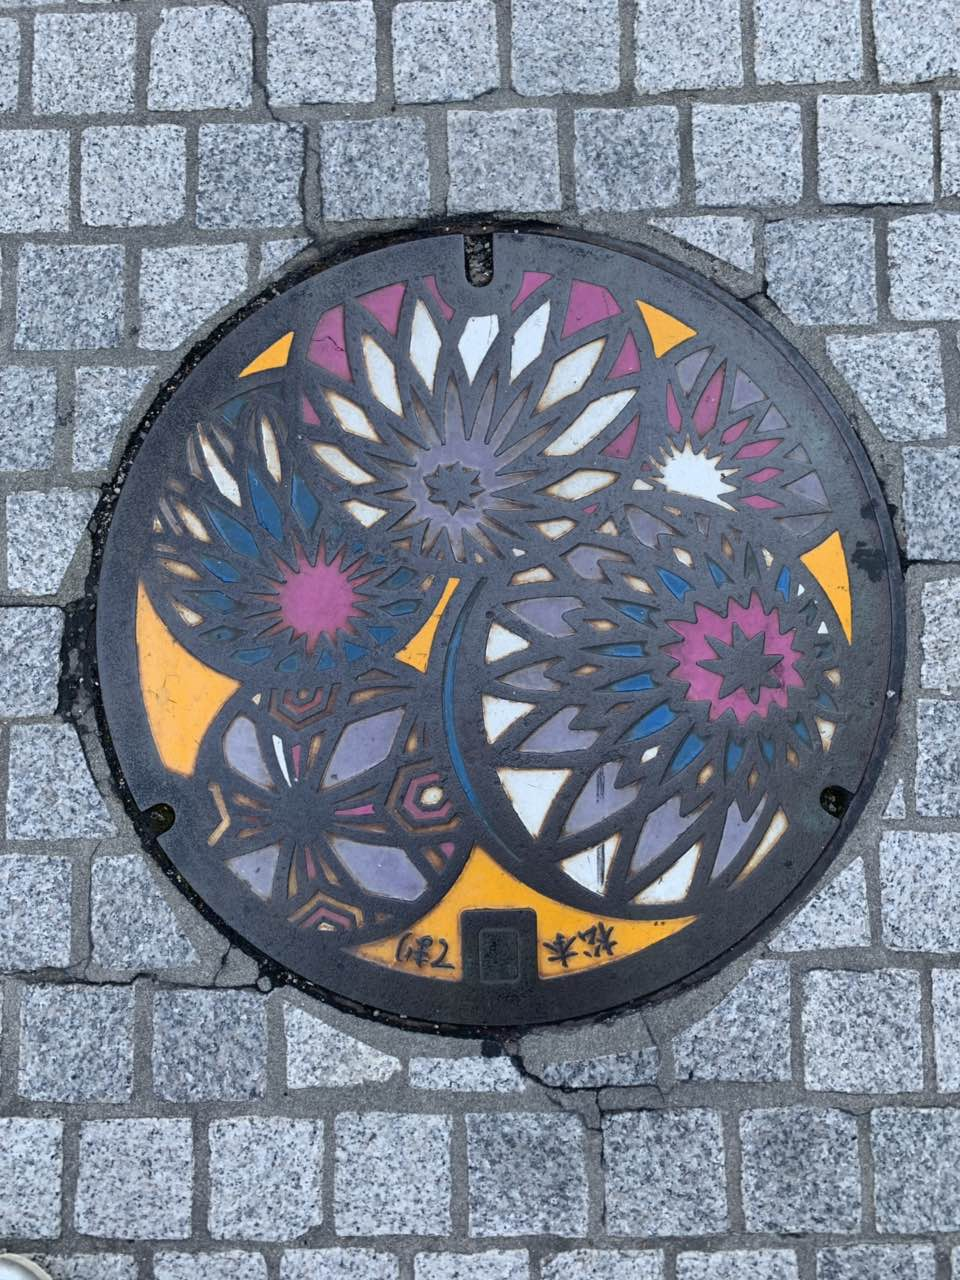 Colorful flower themed manhole cover, Matsumoto